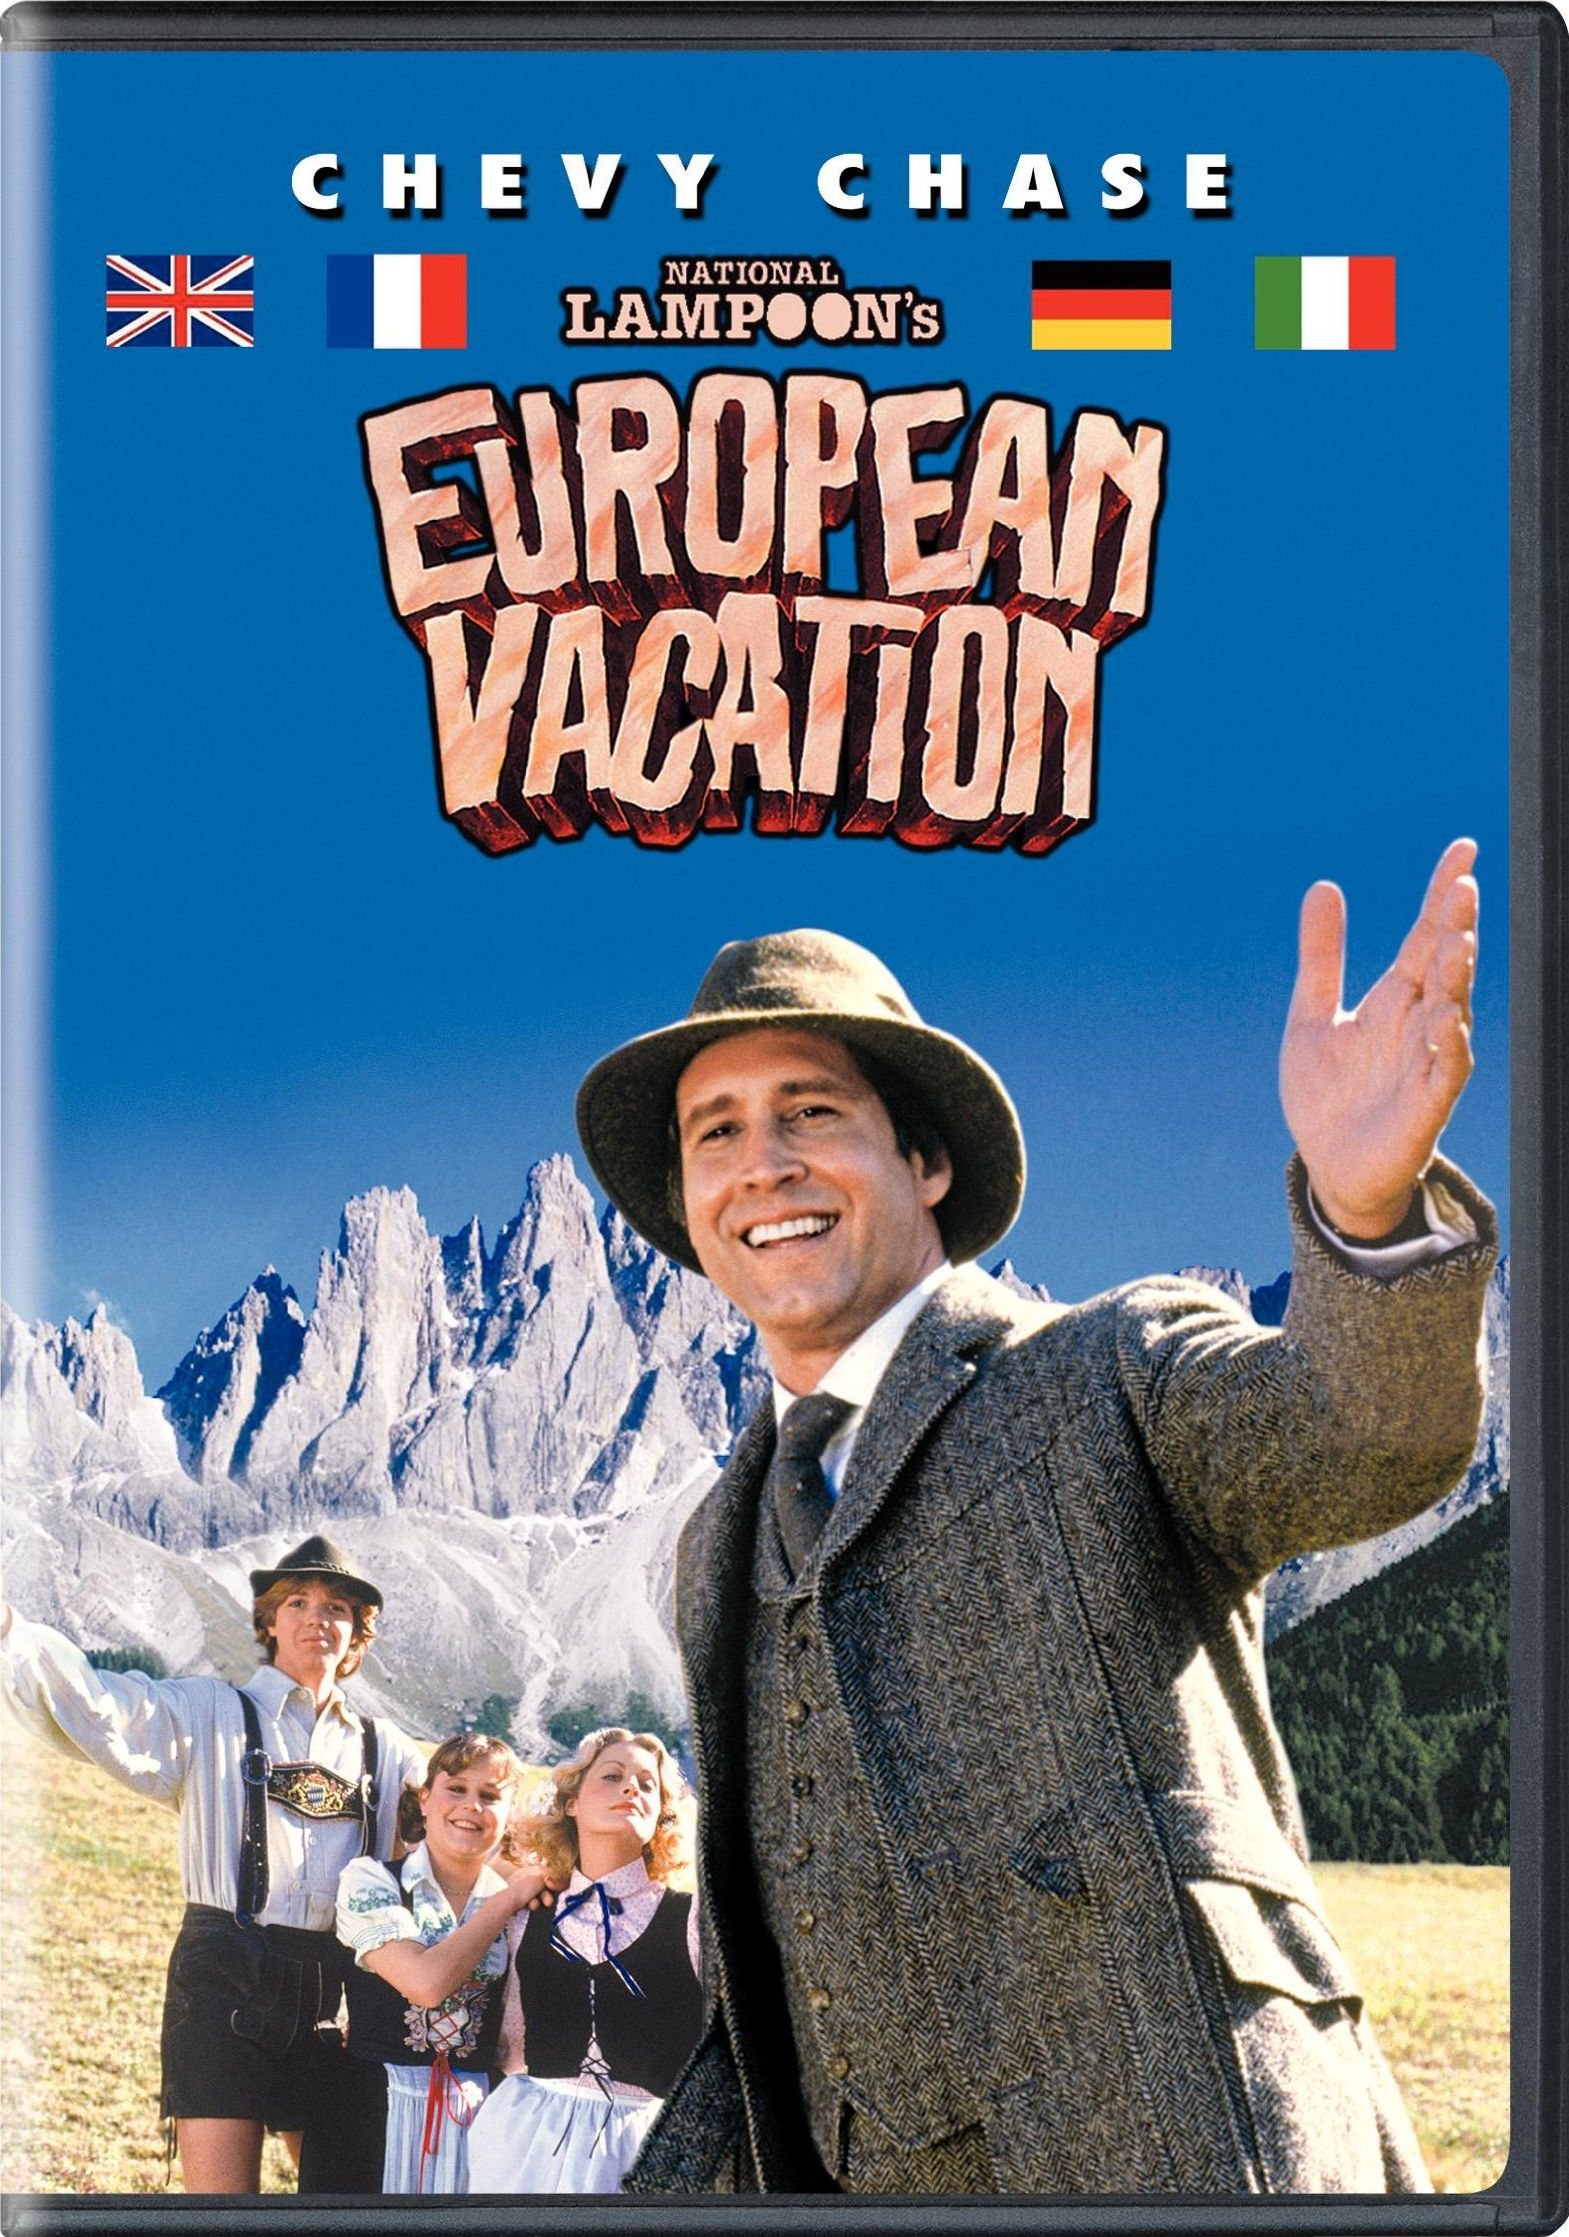 National Lampoons European Vacation Quotes. QuotesGram